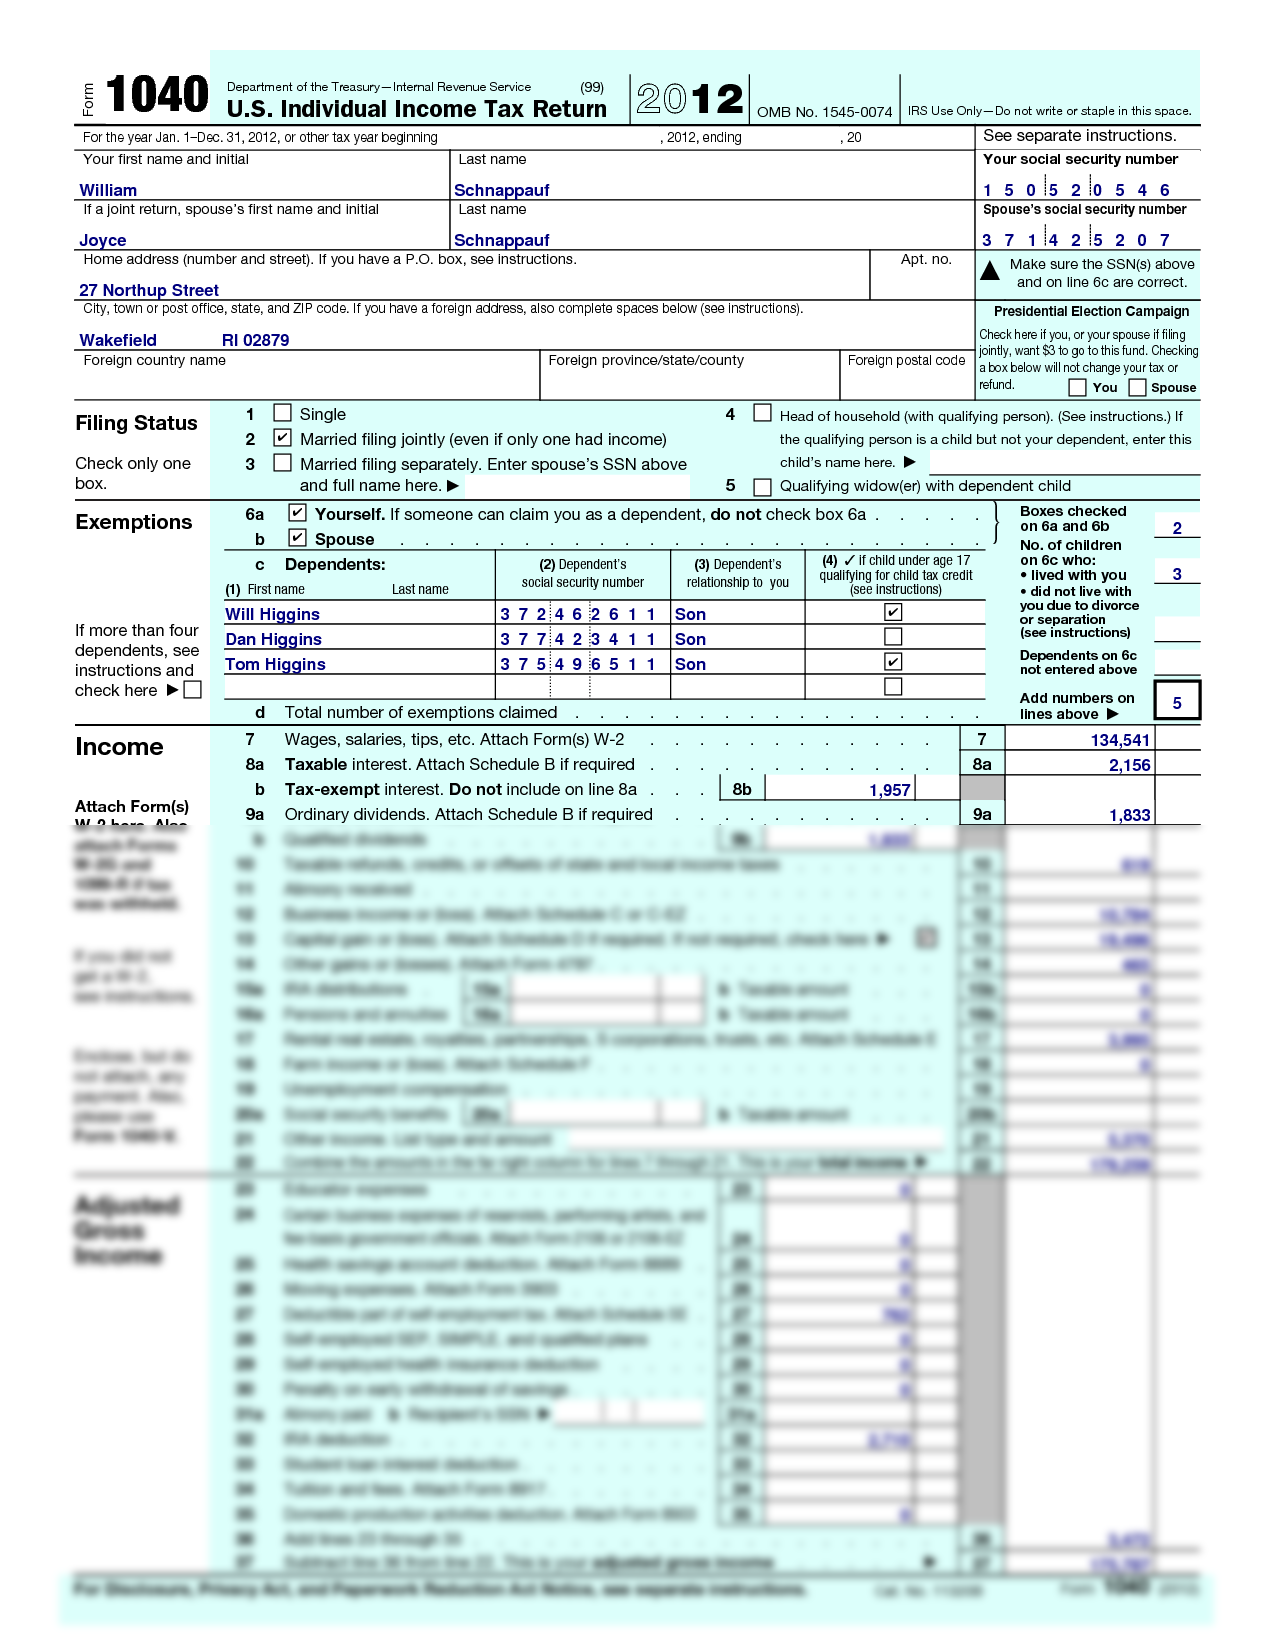 Solution Tax Returns For Bill And Joyce Schnappauf Form 1040 2012